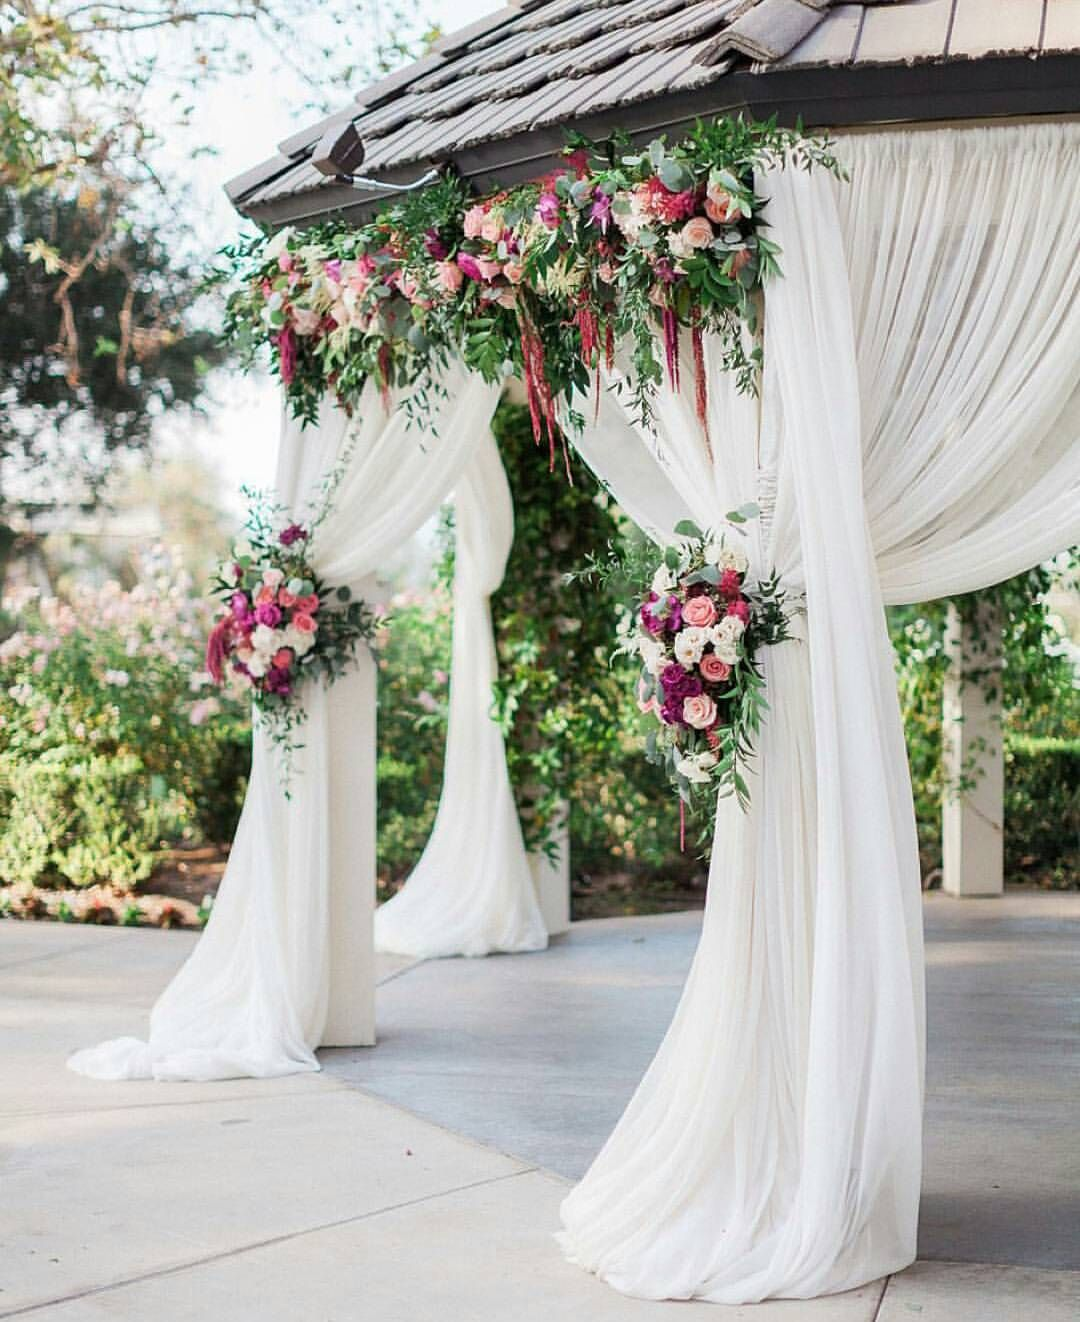 Flower Decoration Ideas For Weddings: Love The Range Of Colors Here But Would Like To See More